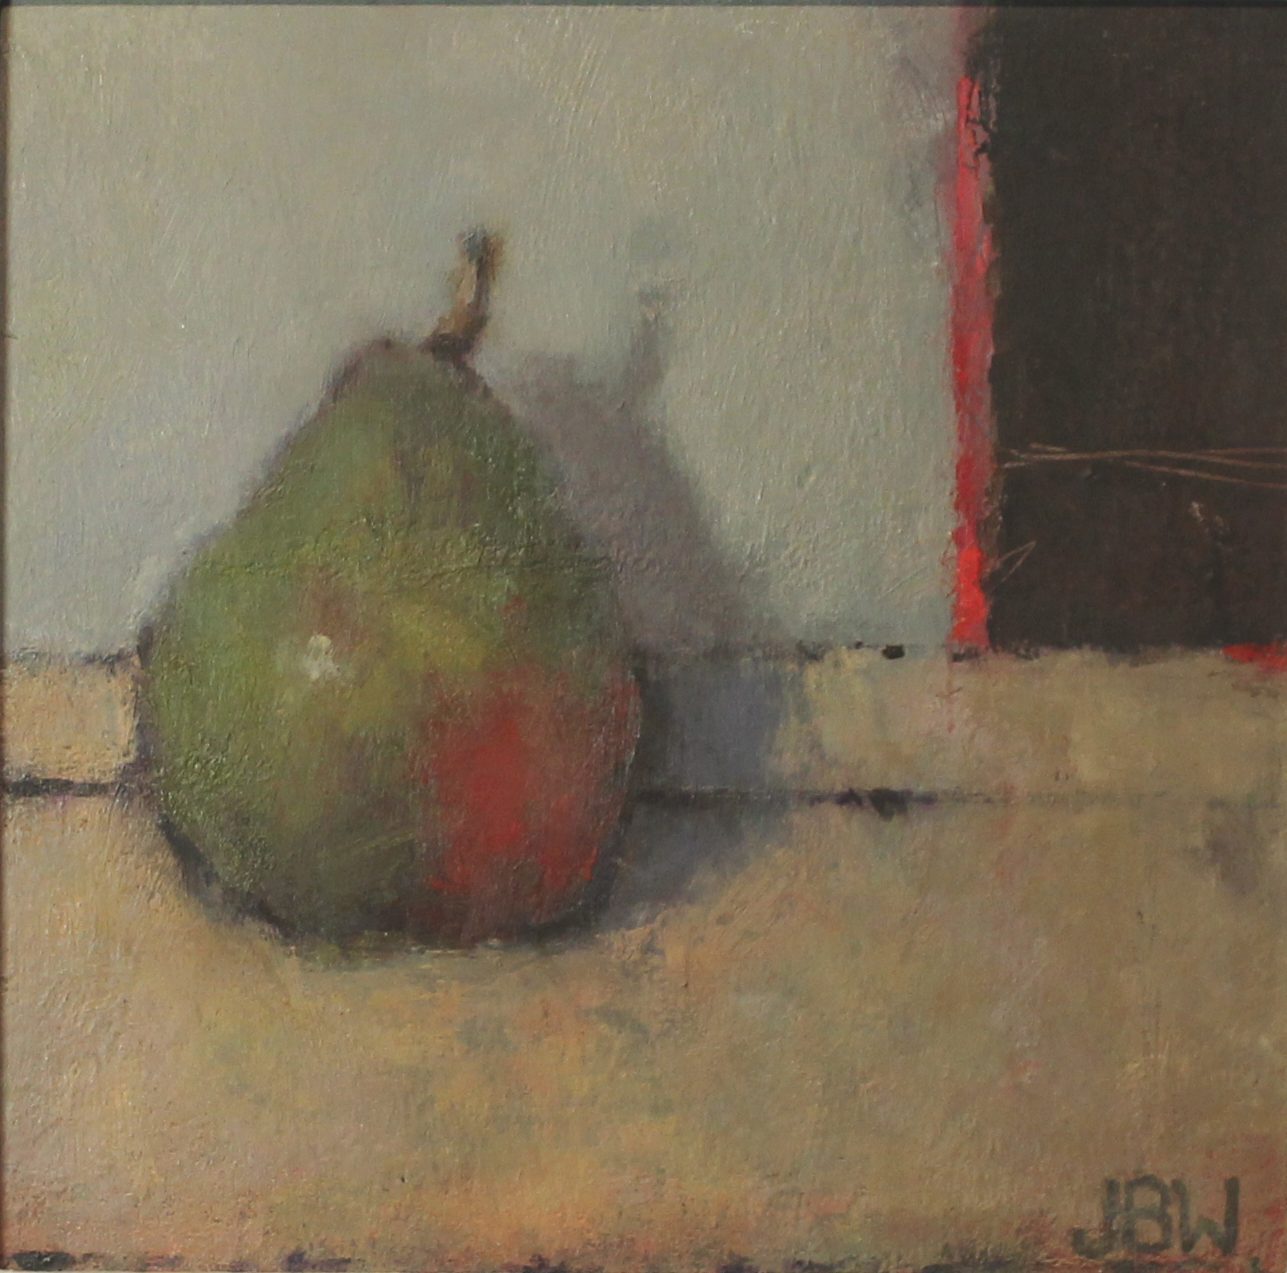 Pear, oil on board, 20x20cms (2)